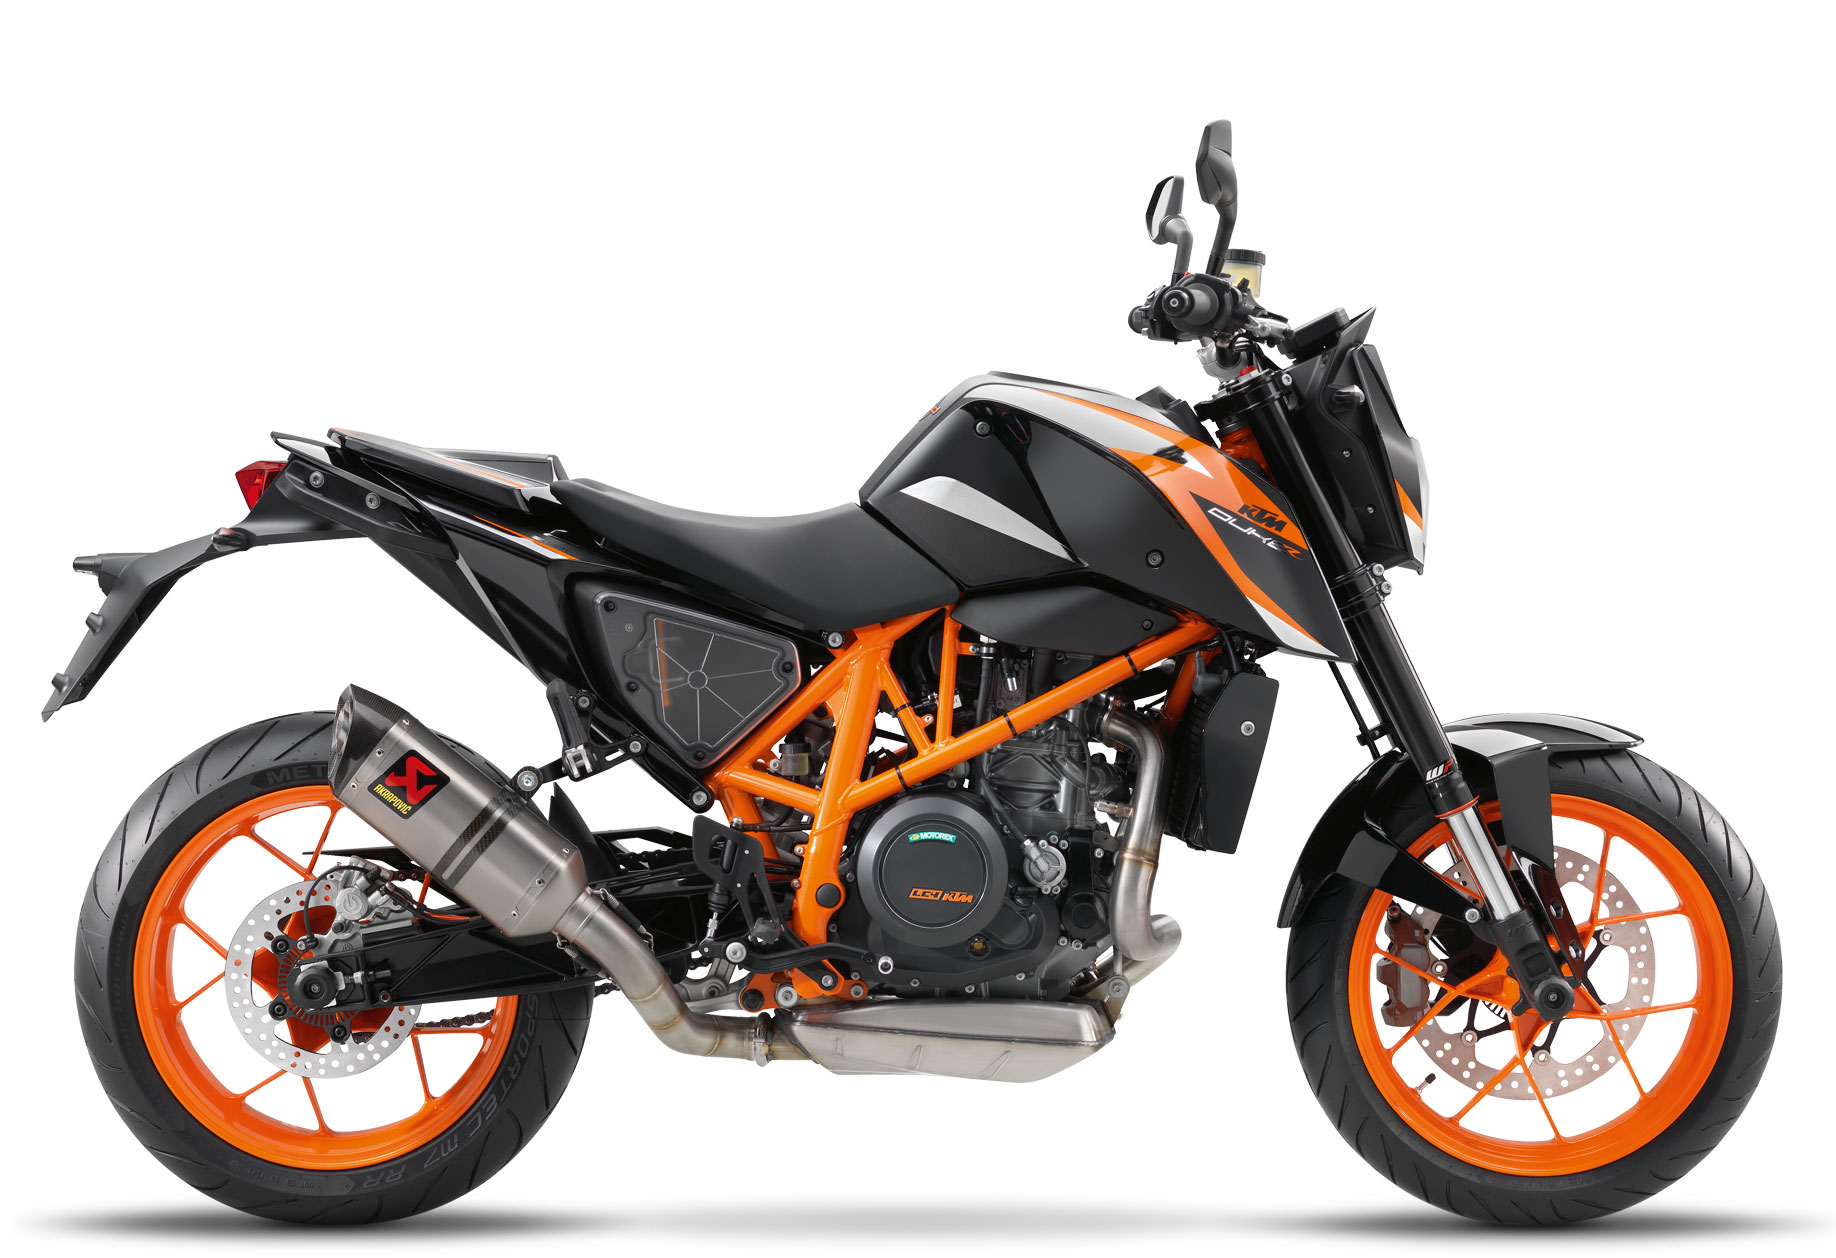 ktm 690 duke r specs 2016 2017 2018 autoevolution. Black Bedroom Furniture Sets. Home Design Ideas